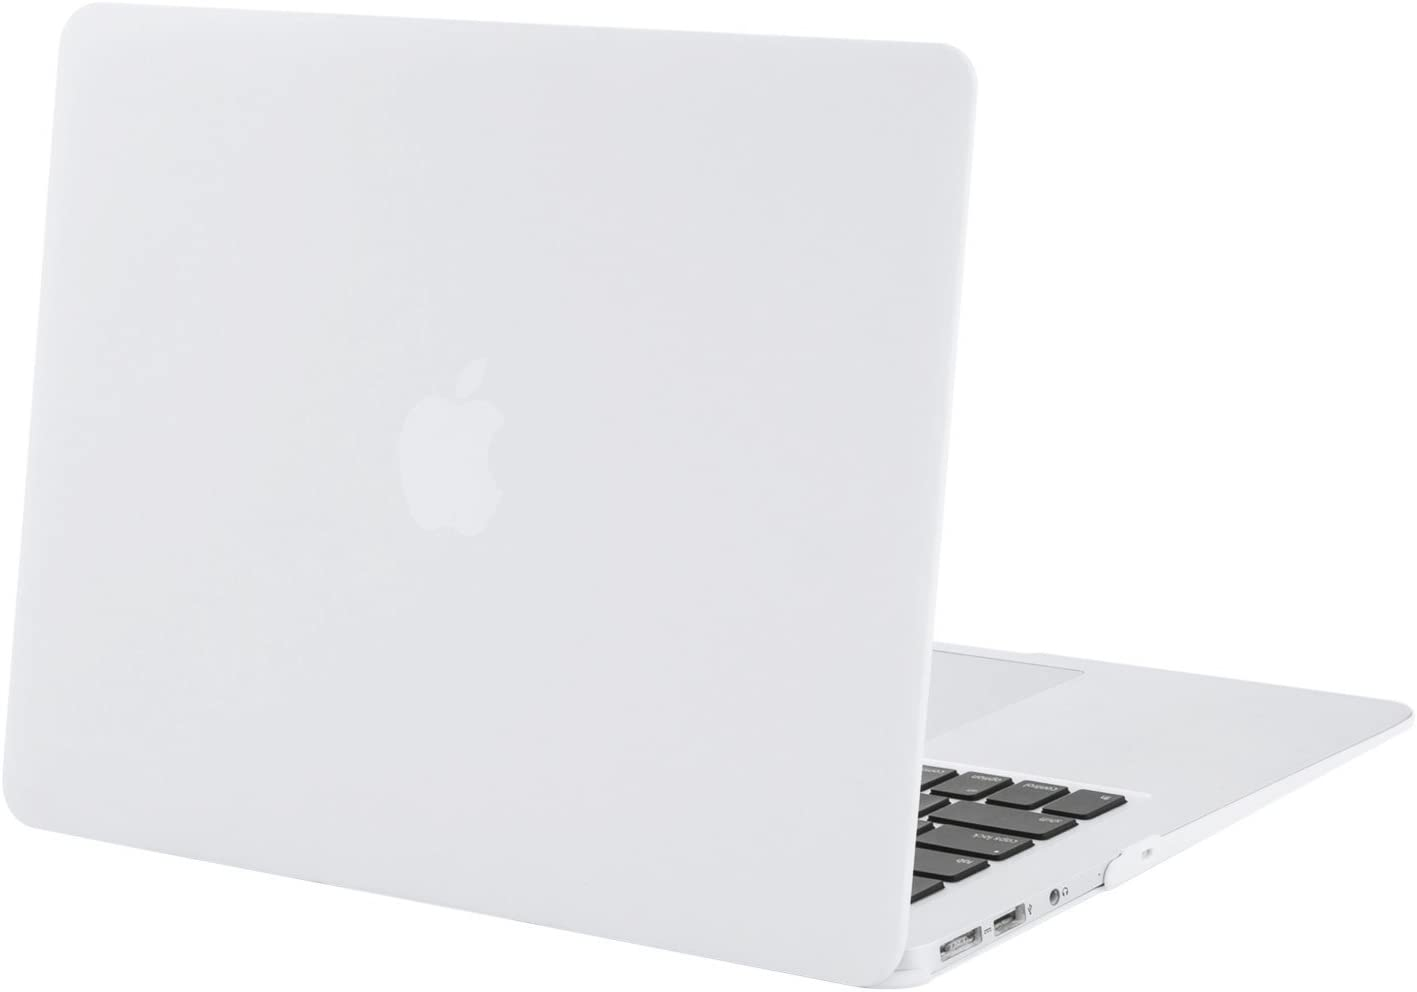 MOSISO MacBook Air 13 inch Case (Models: A1369 & A1466, Older Version 2010-2017 Release), Plastic Hard Shell Case Cover Only Compatible with MacBook Air 13 inch, White